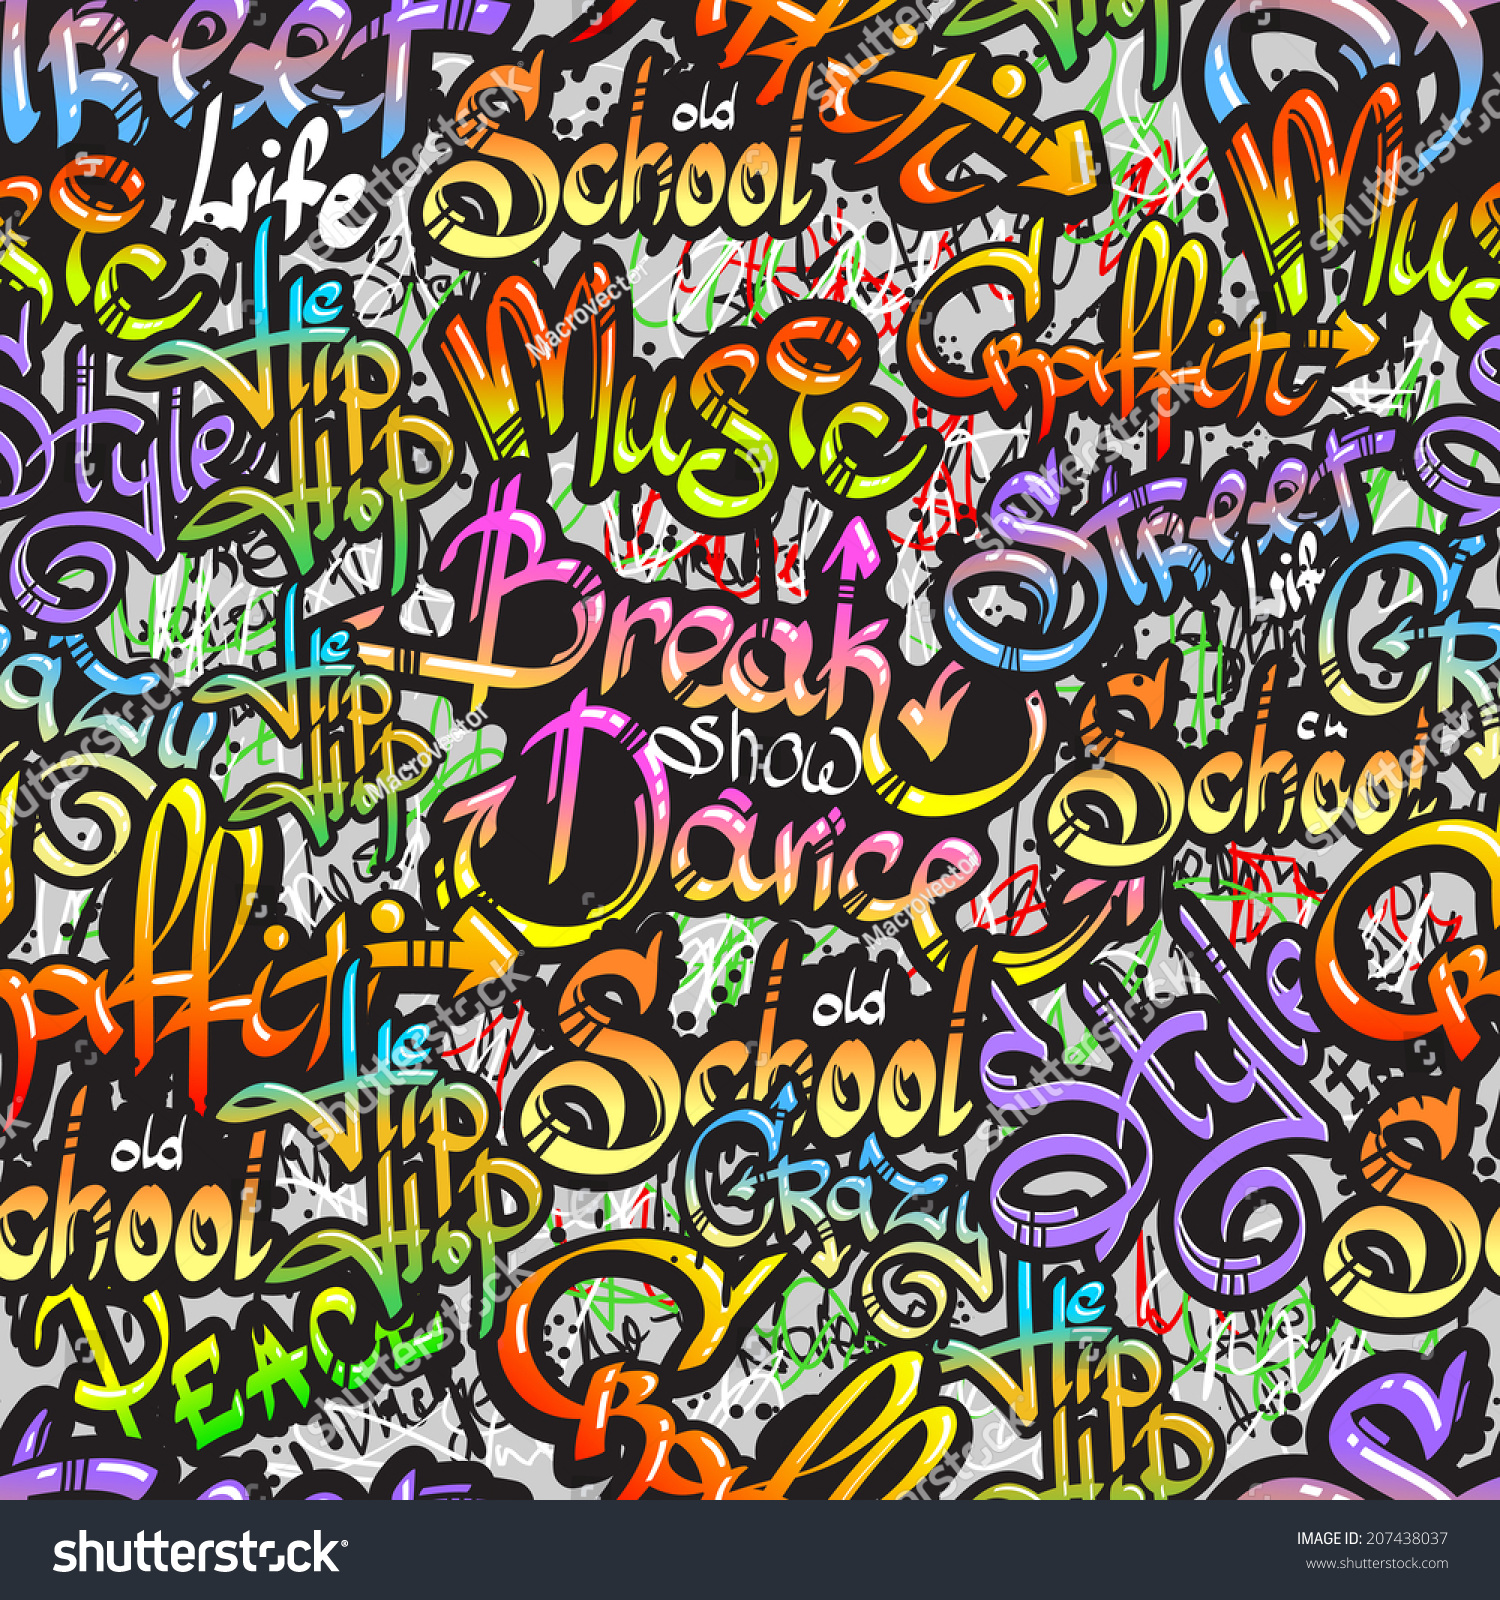 Graffiti spray paint expressive street crazy stock vector for Wall spray painting designs